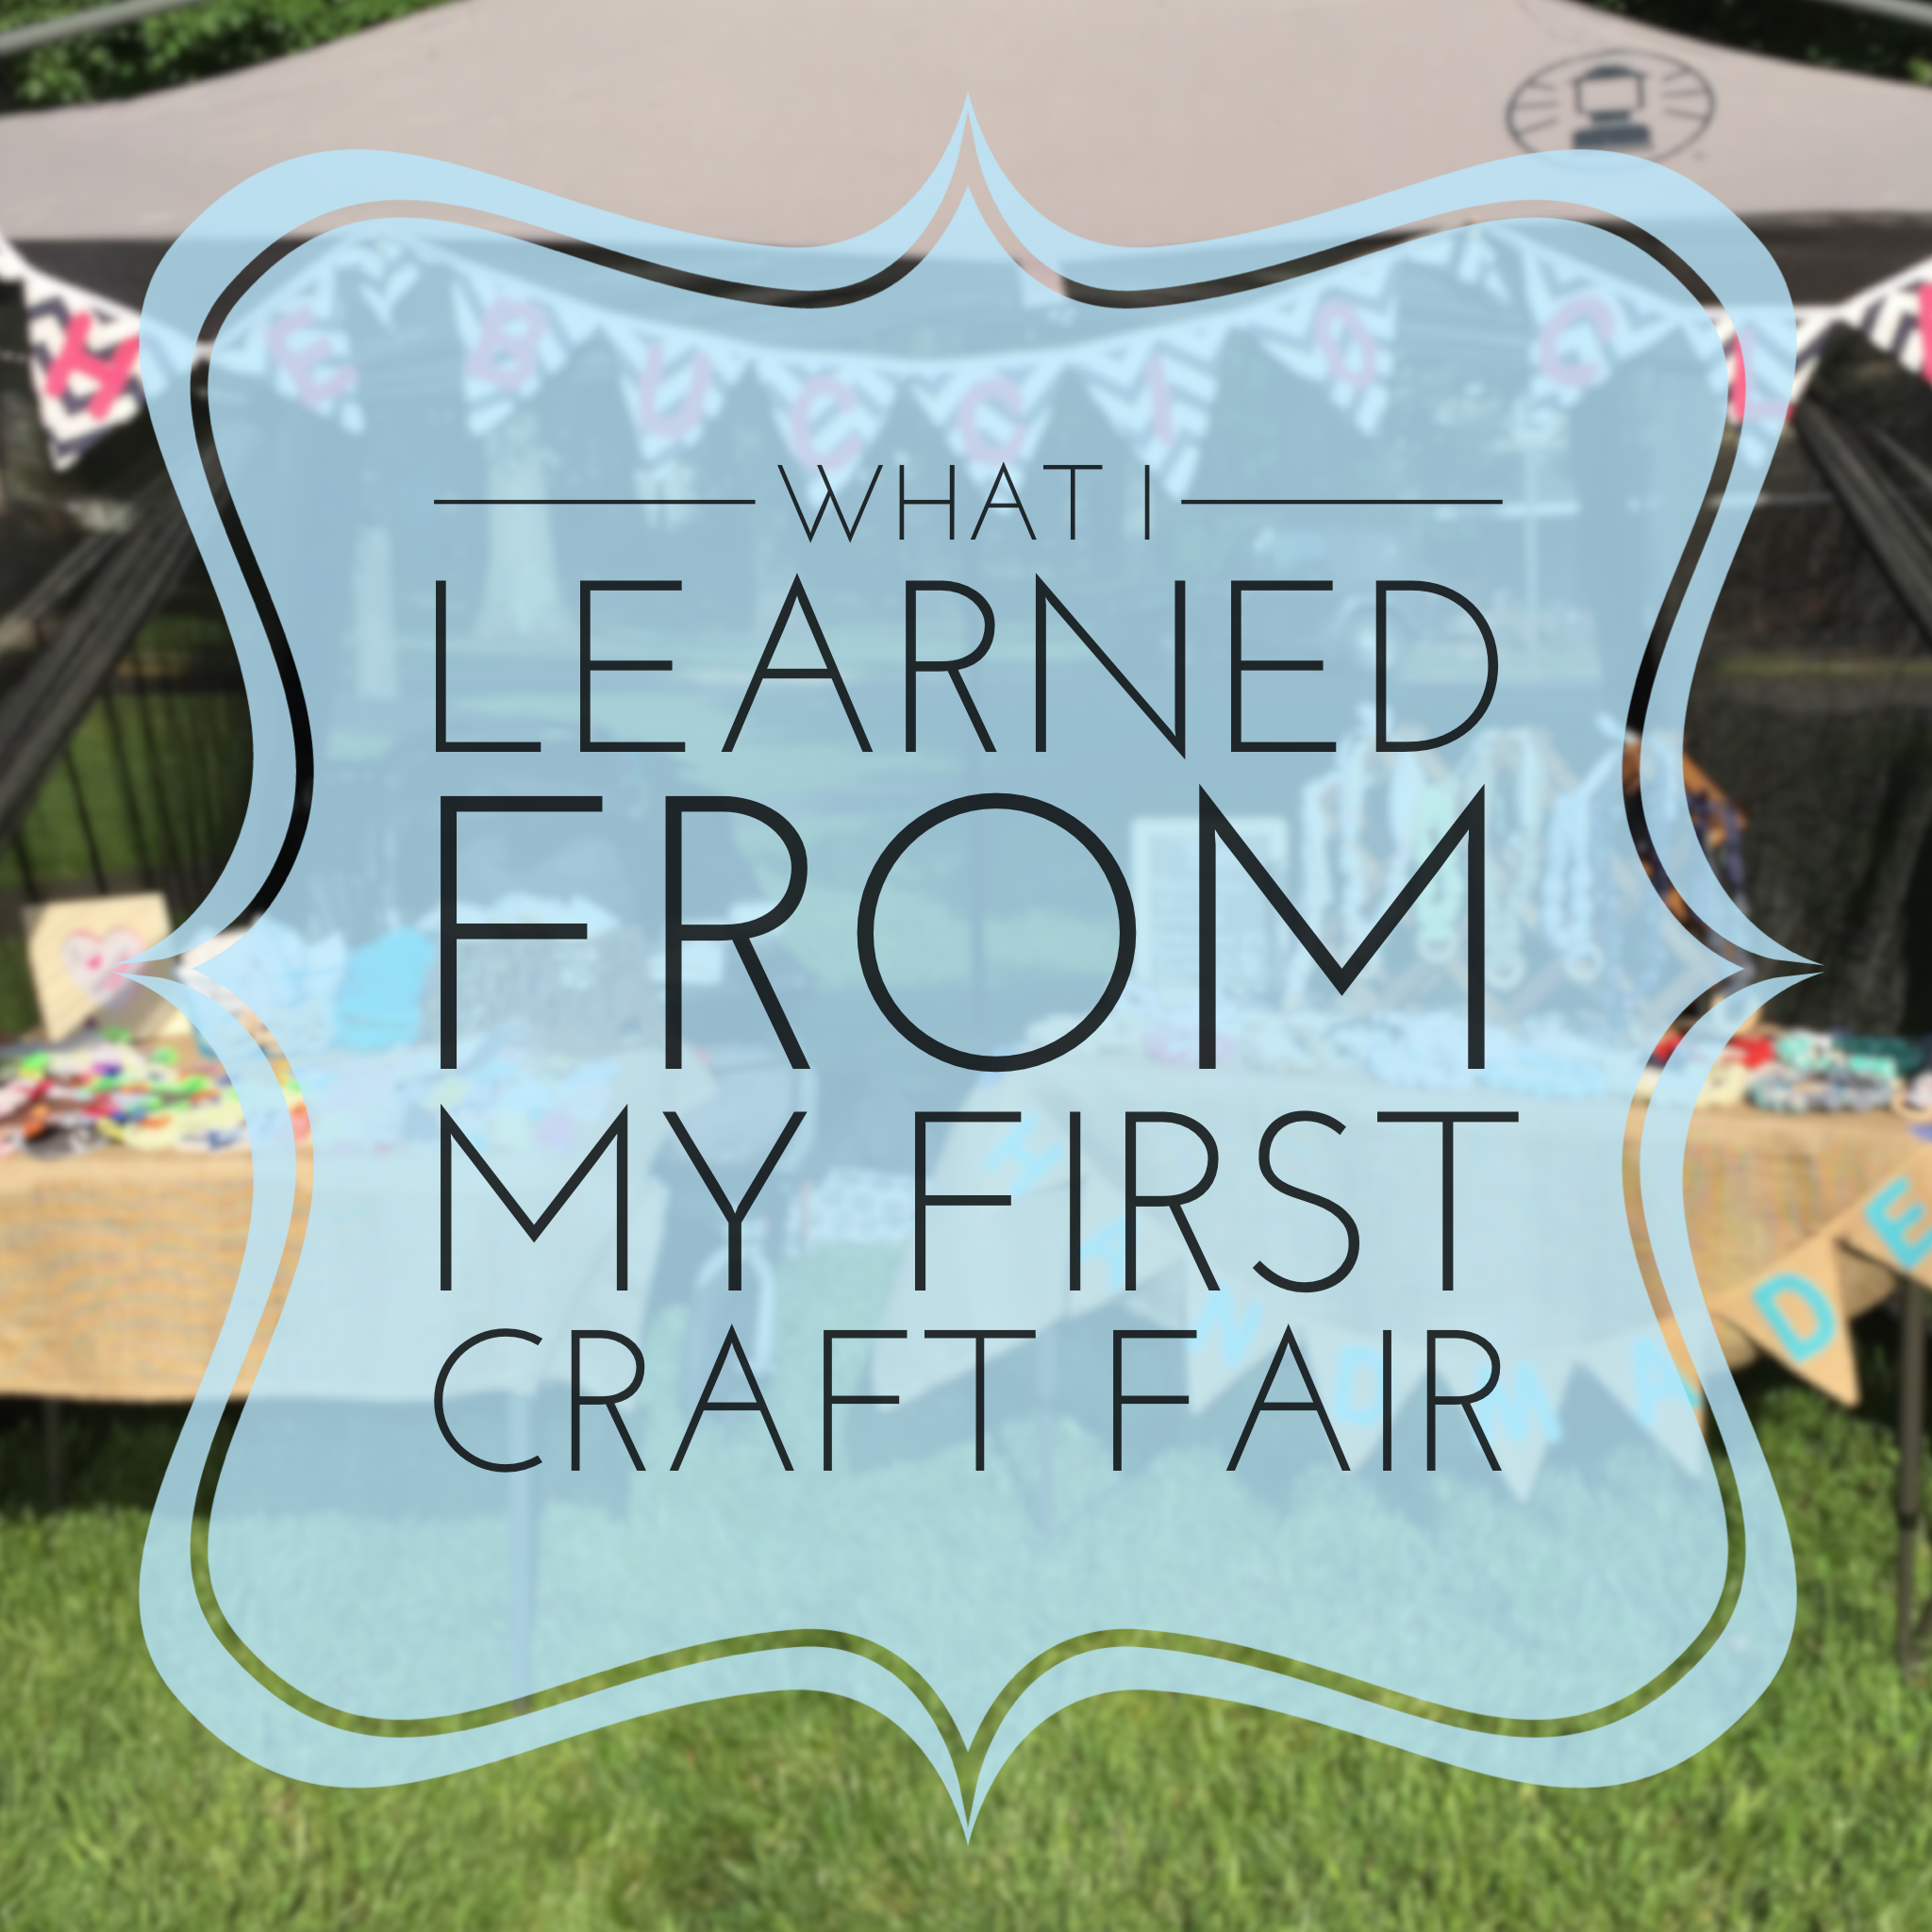 What I Learned From My First Craft Fair